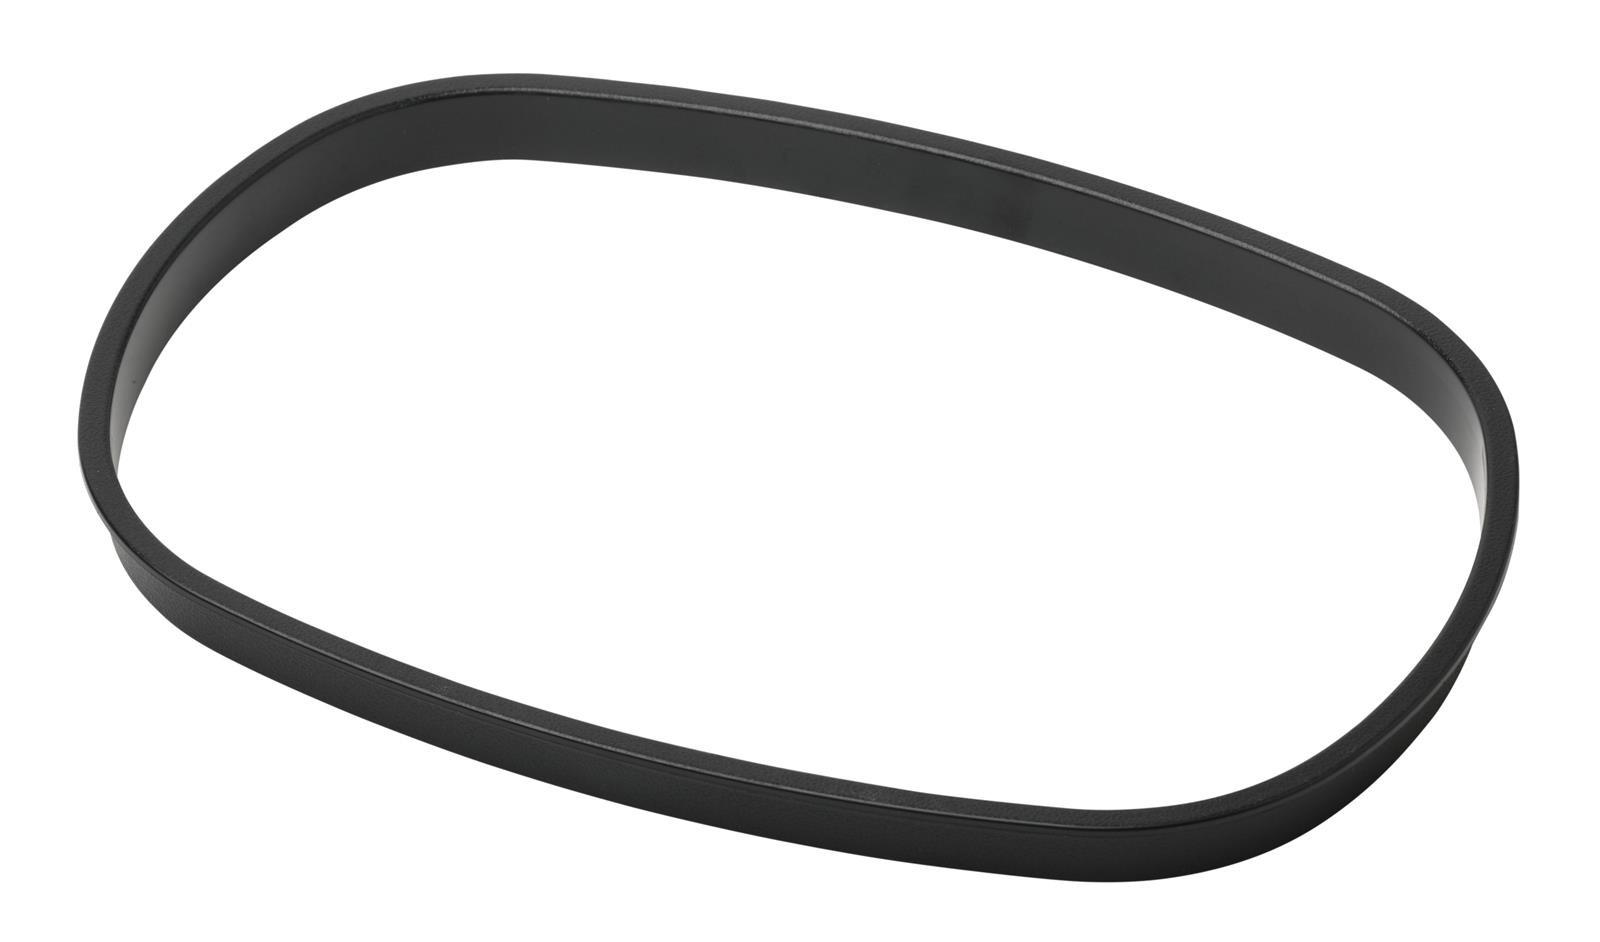 Replacement Ring For The 12 Litre Oval Series Autobin